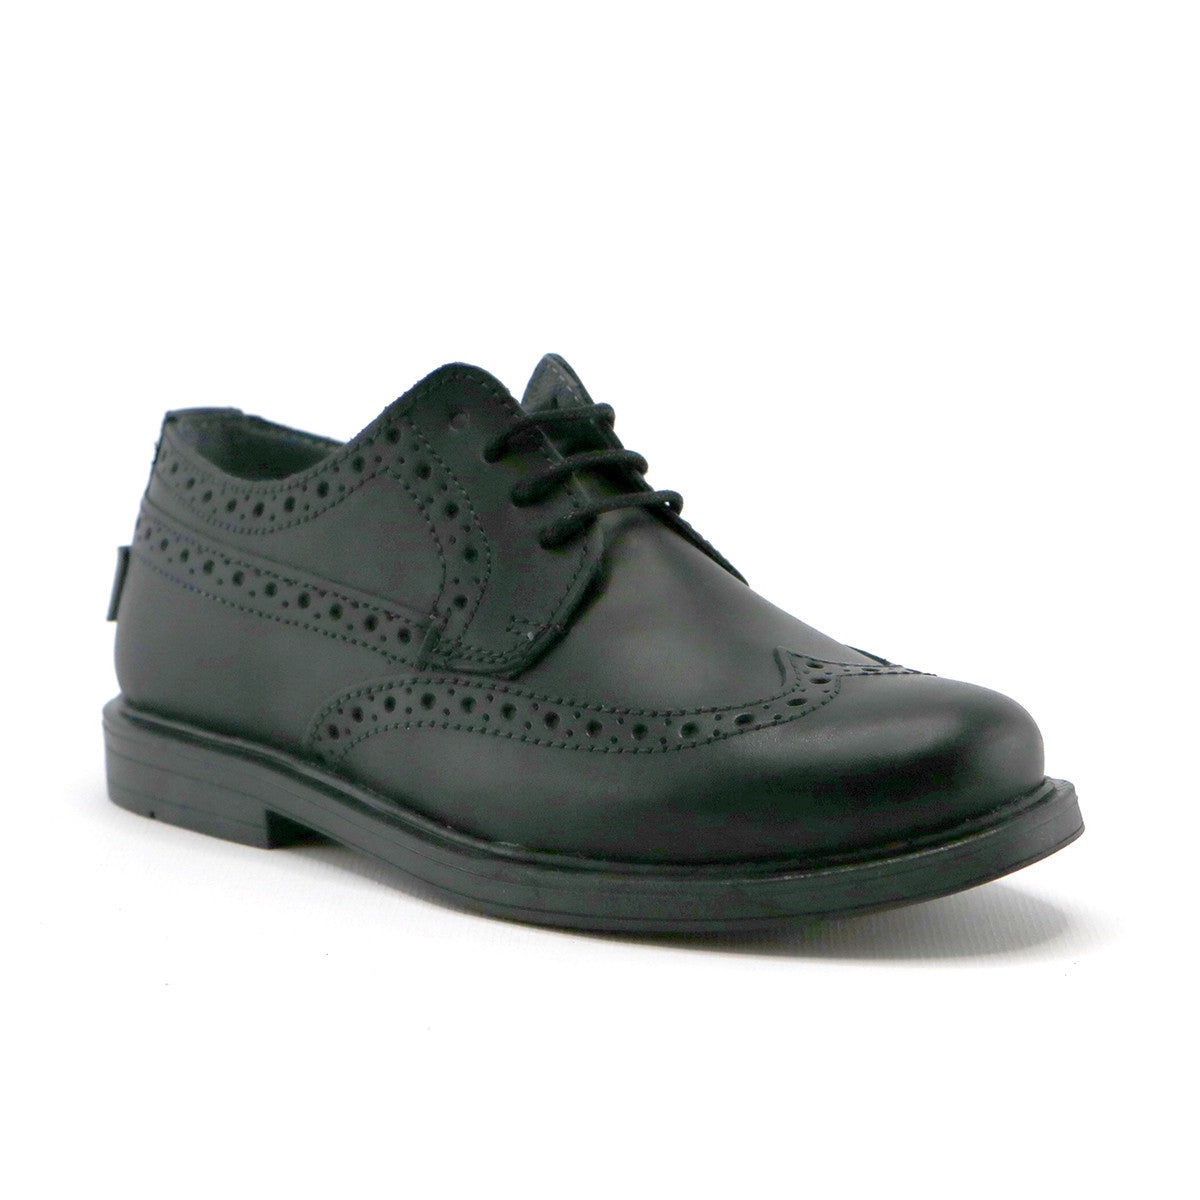 School shoes for boys – Simply Shoes